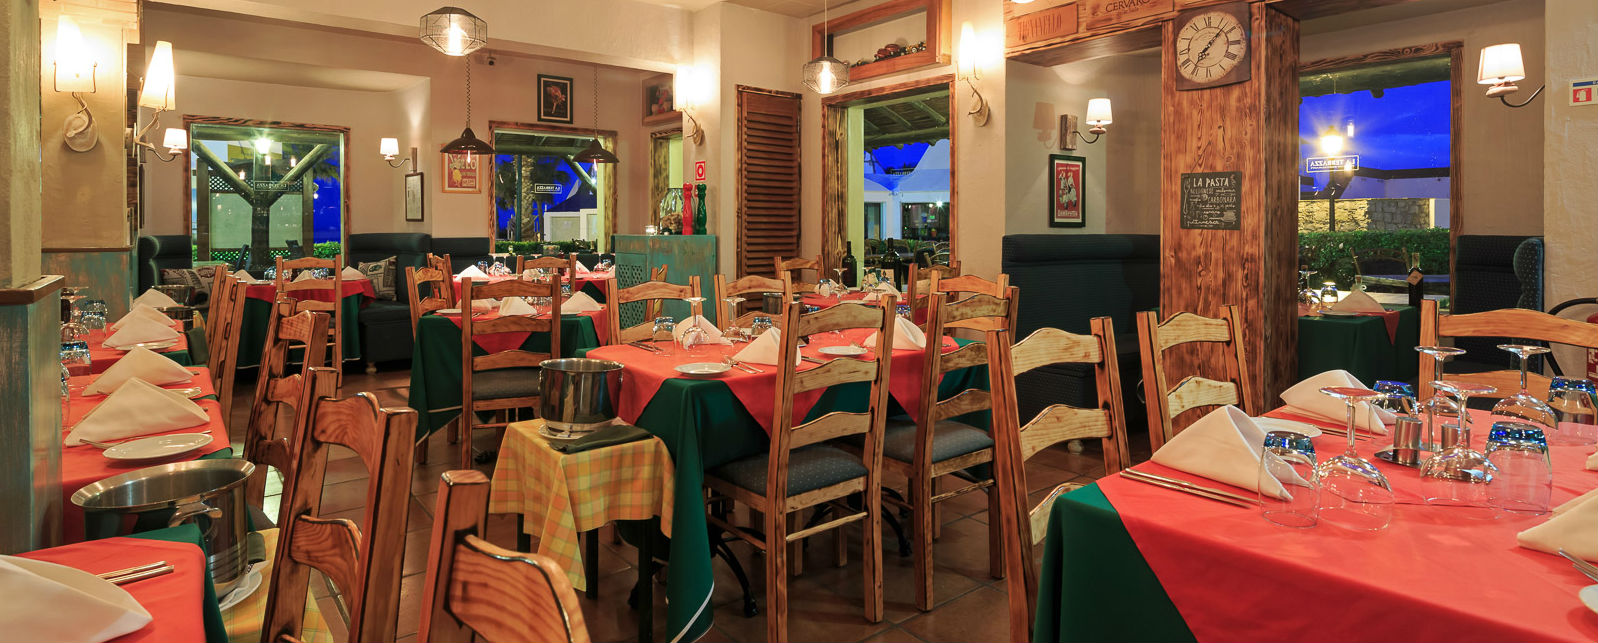 La Terrazza Italian Restaurant - Restaurants in Vale do Lobo